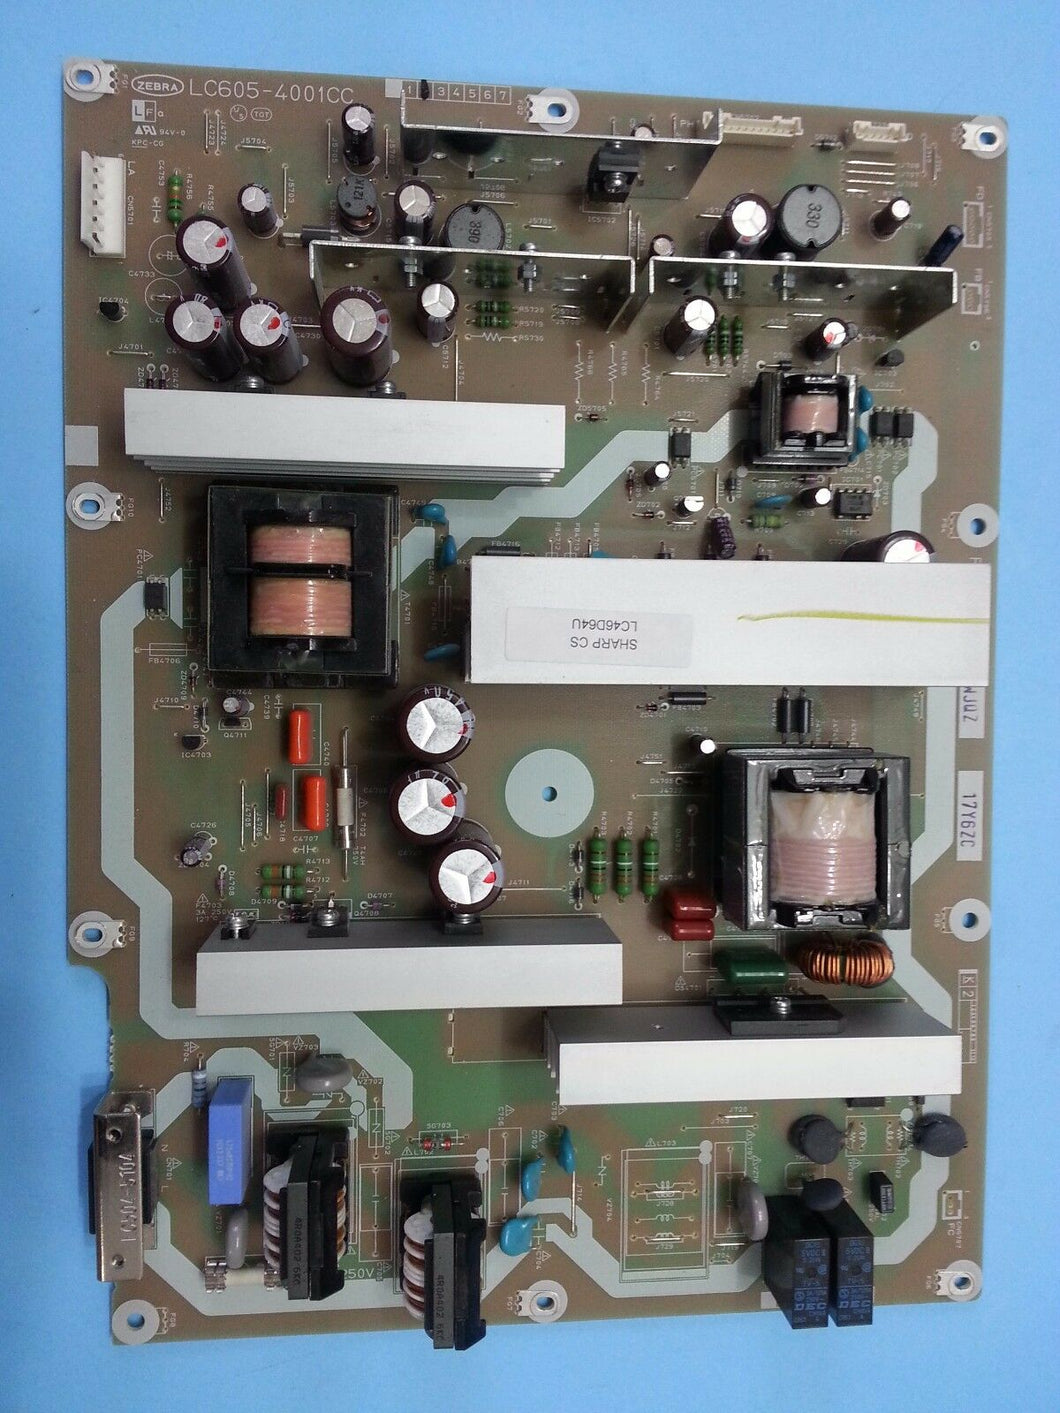 RDENCA184WJQZ  LC605-4001CC LC-46D64U  power board SHARP